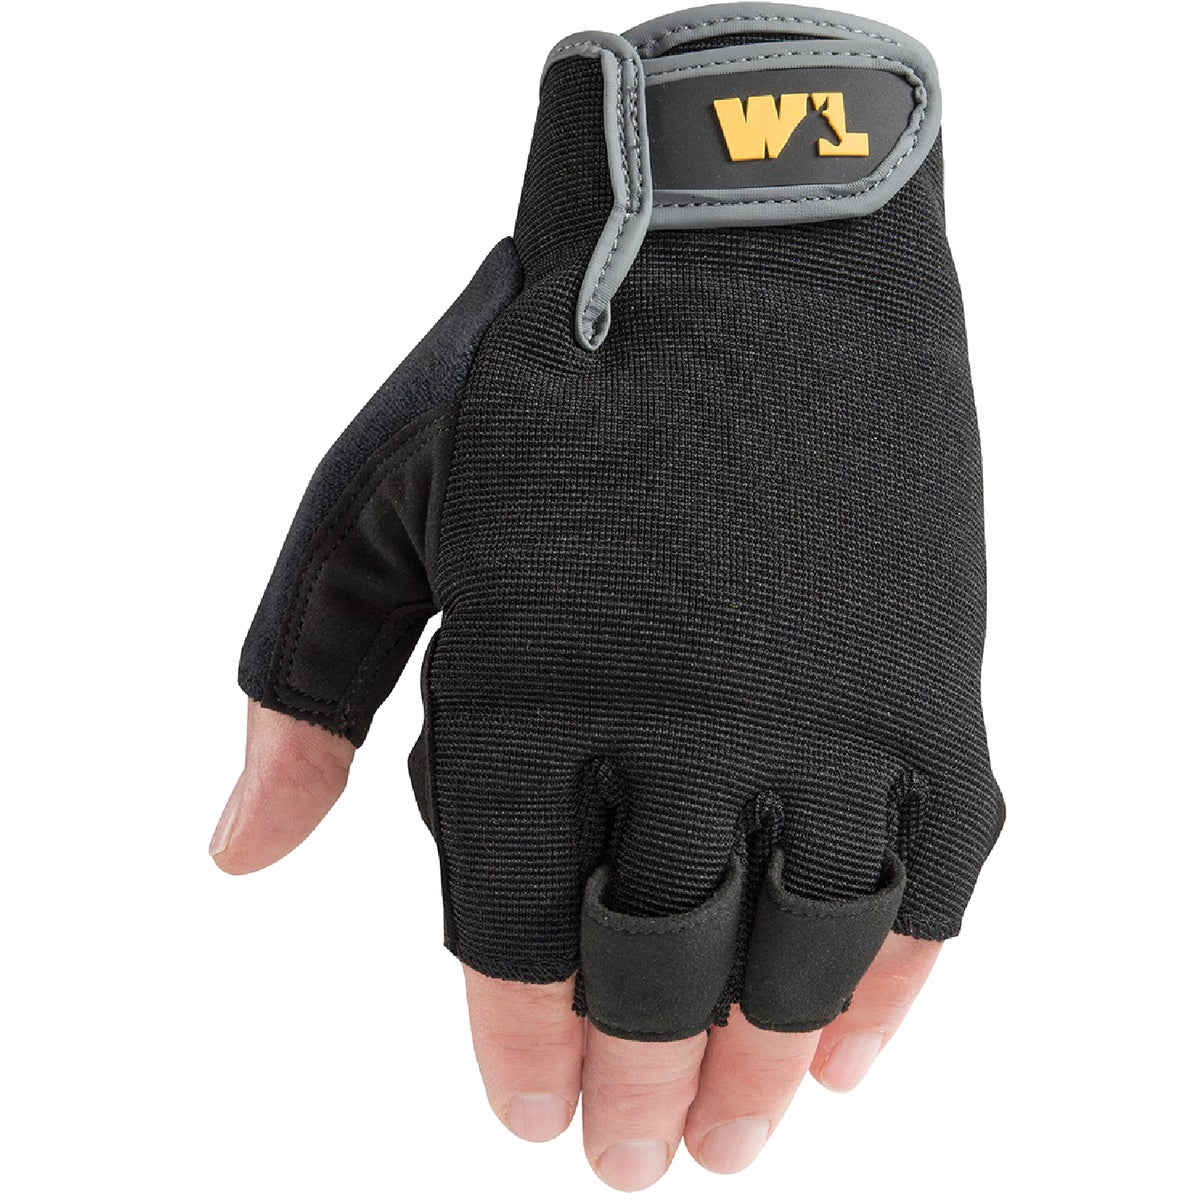 MED FINGERLESS GLOVE - 836M by Wells Lamont